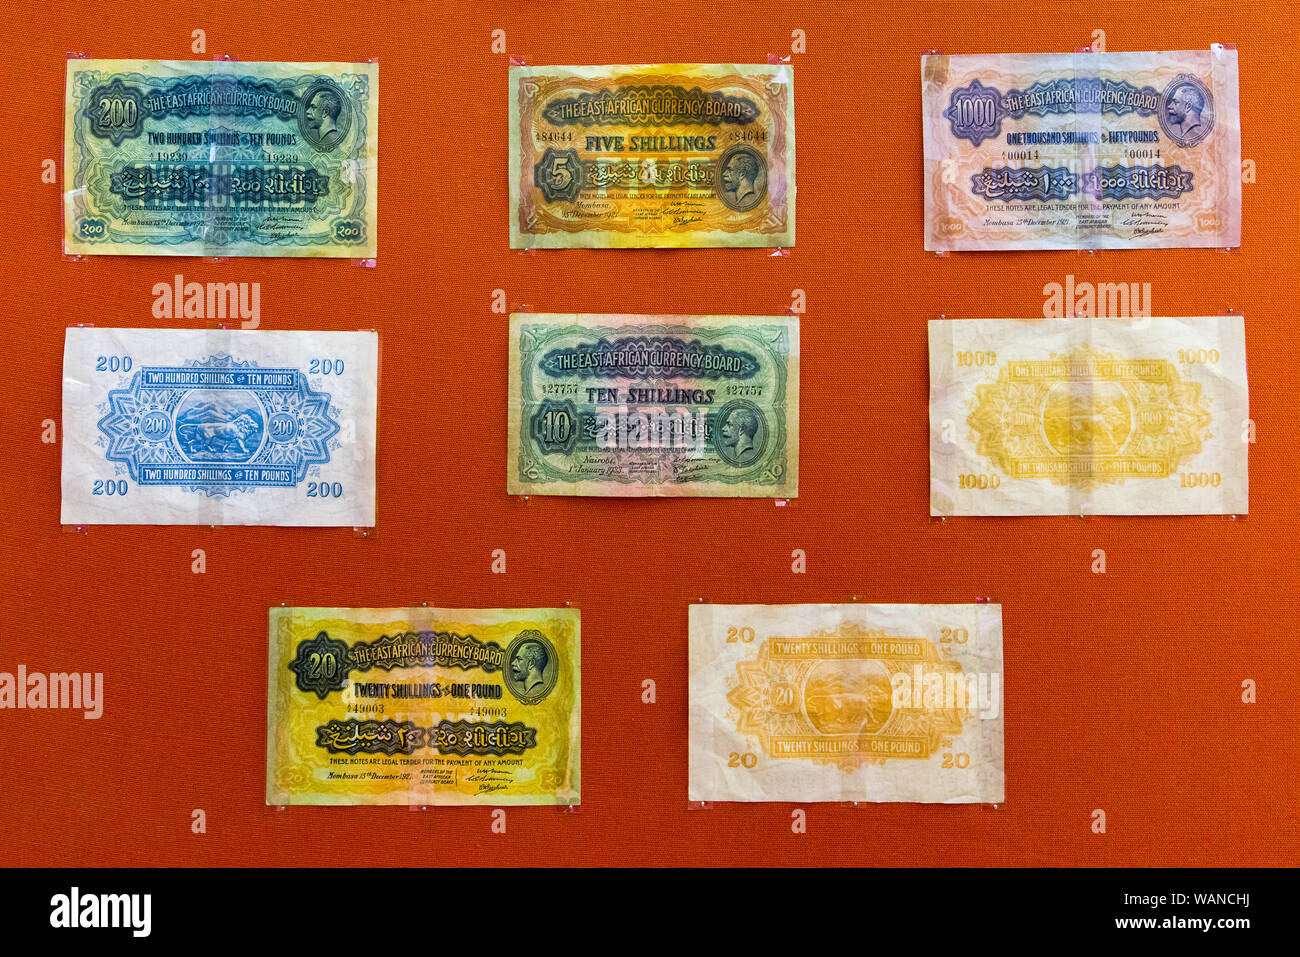 Various old bank notes of the East African Currency Board on display, Nairobi National Museum, Kenya Stock Photo